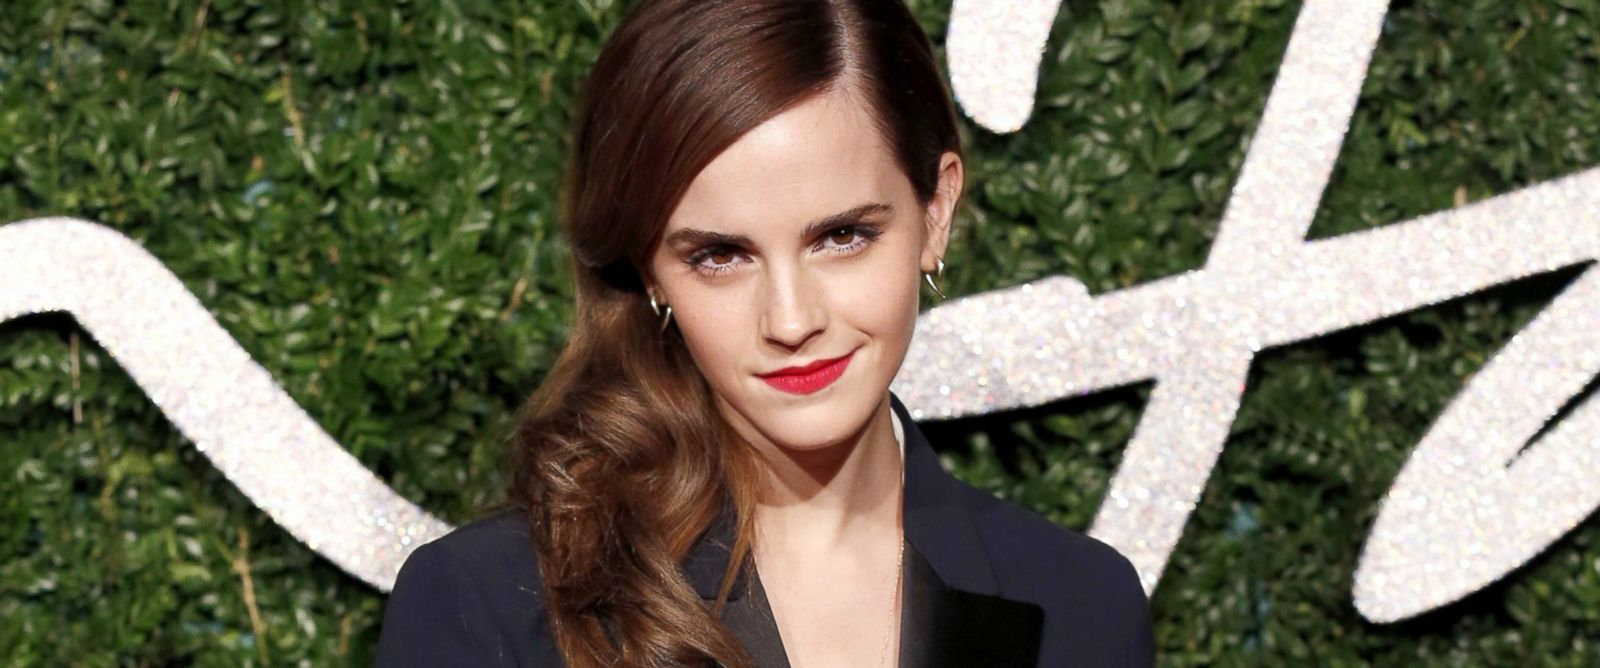 PHOTO: Emma Watson poses on the red carpet upon arrival to attend the British Fashion Awards 2014 in London, Dec. 1, 2014.